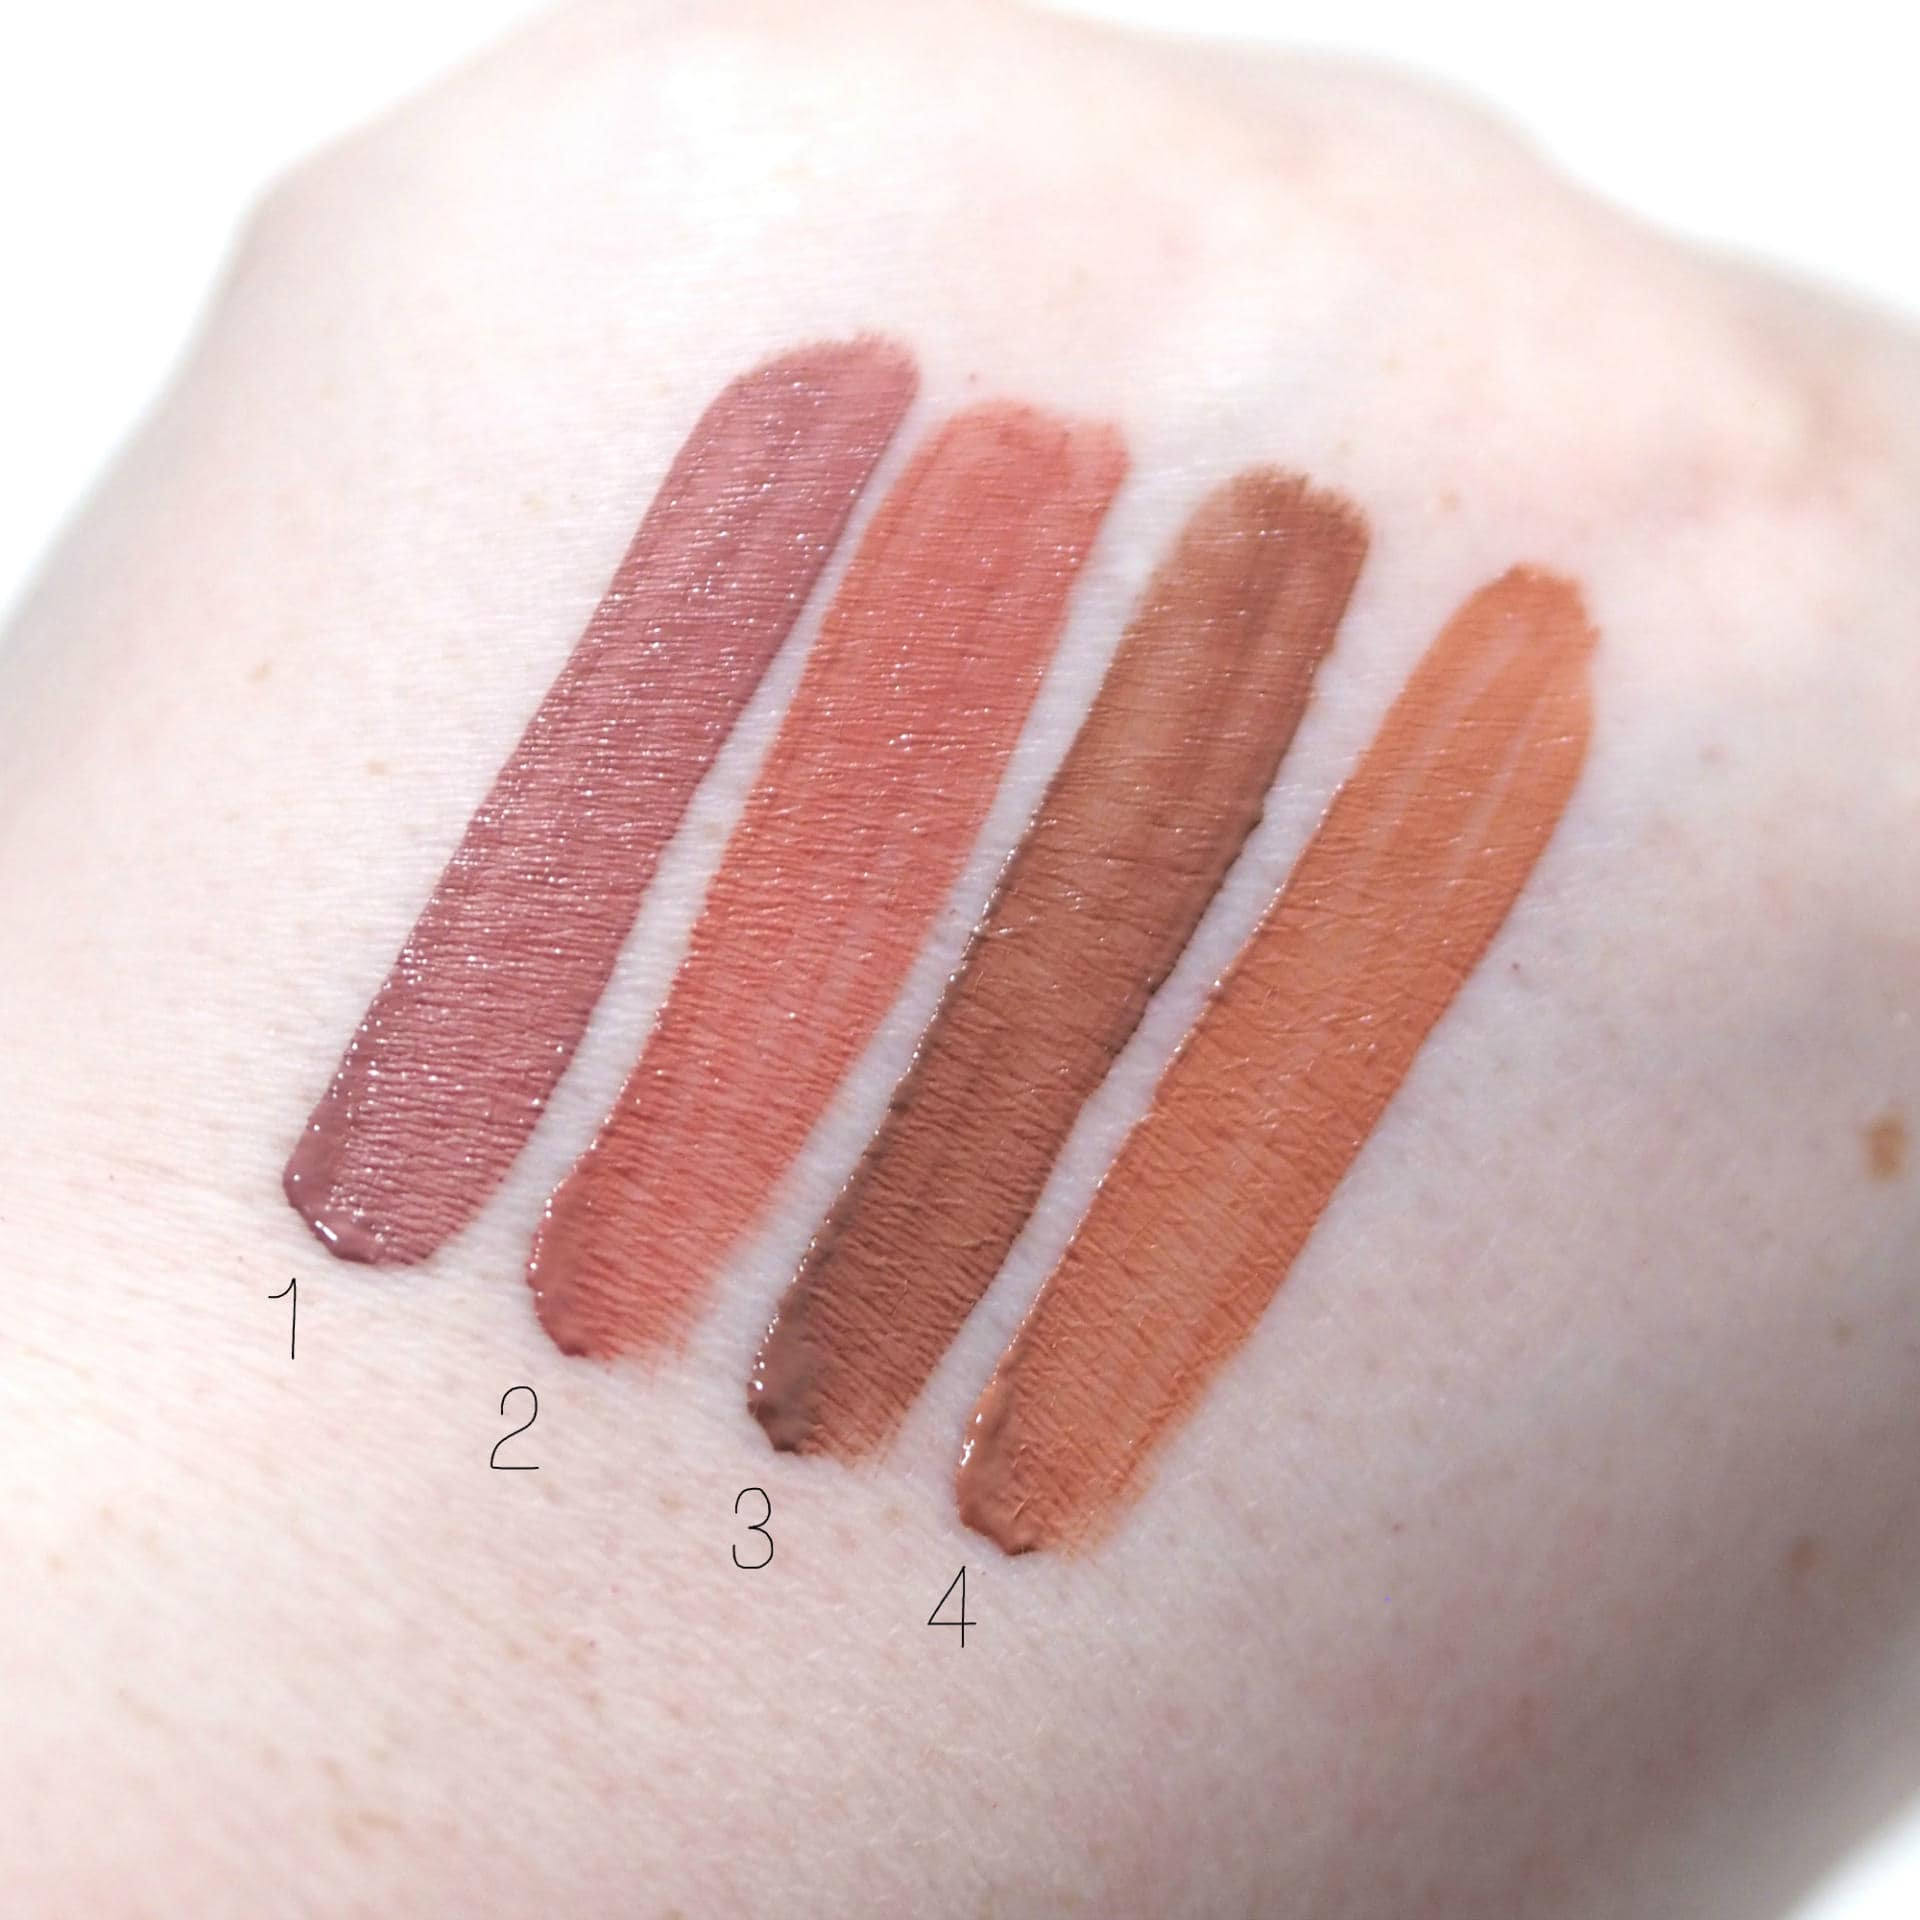 W7 Duped Nice Nudes Matte Liquid Lipstick Set Review and Swatches